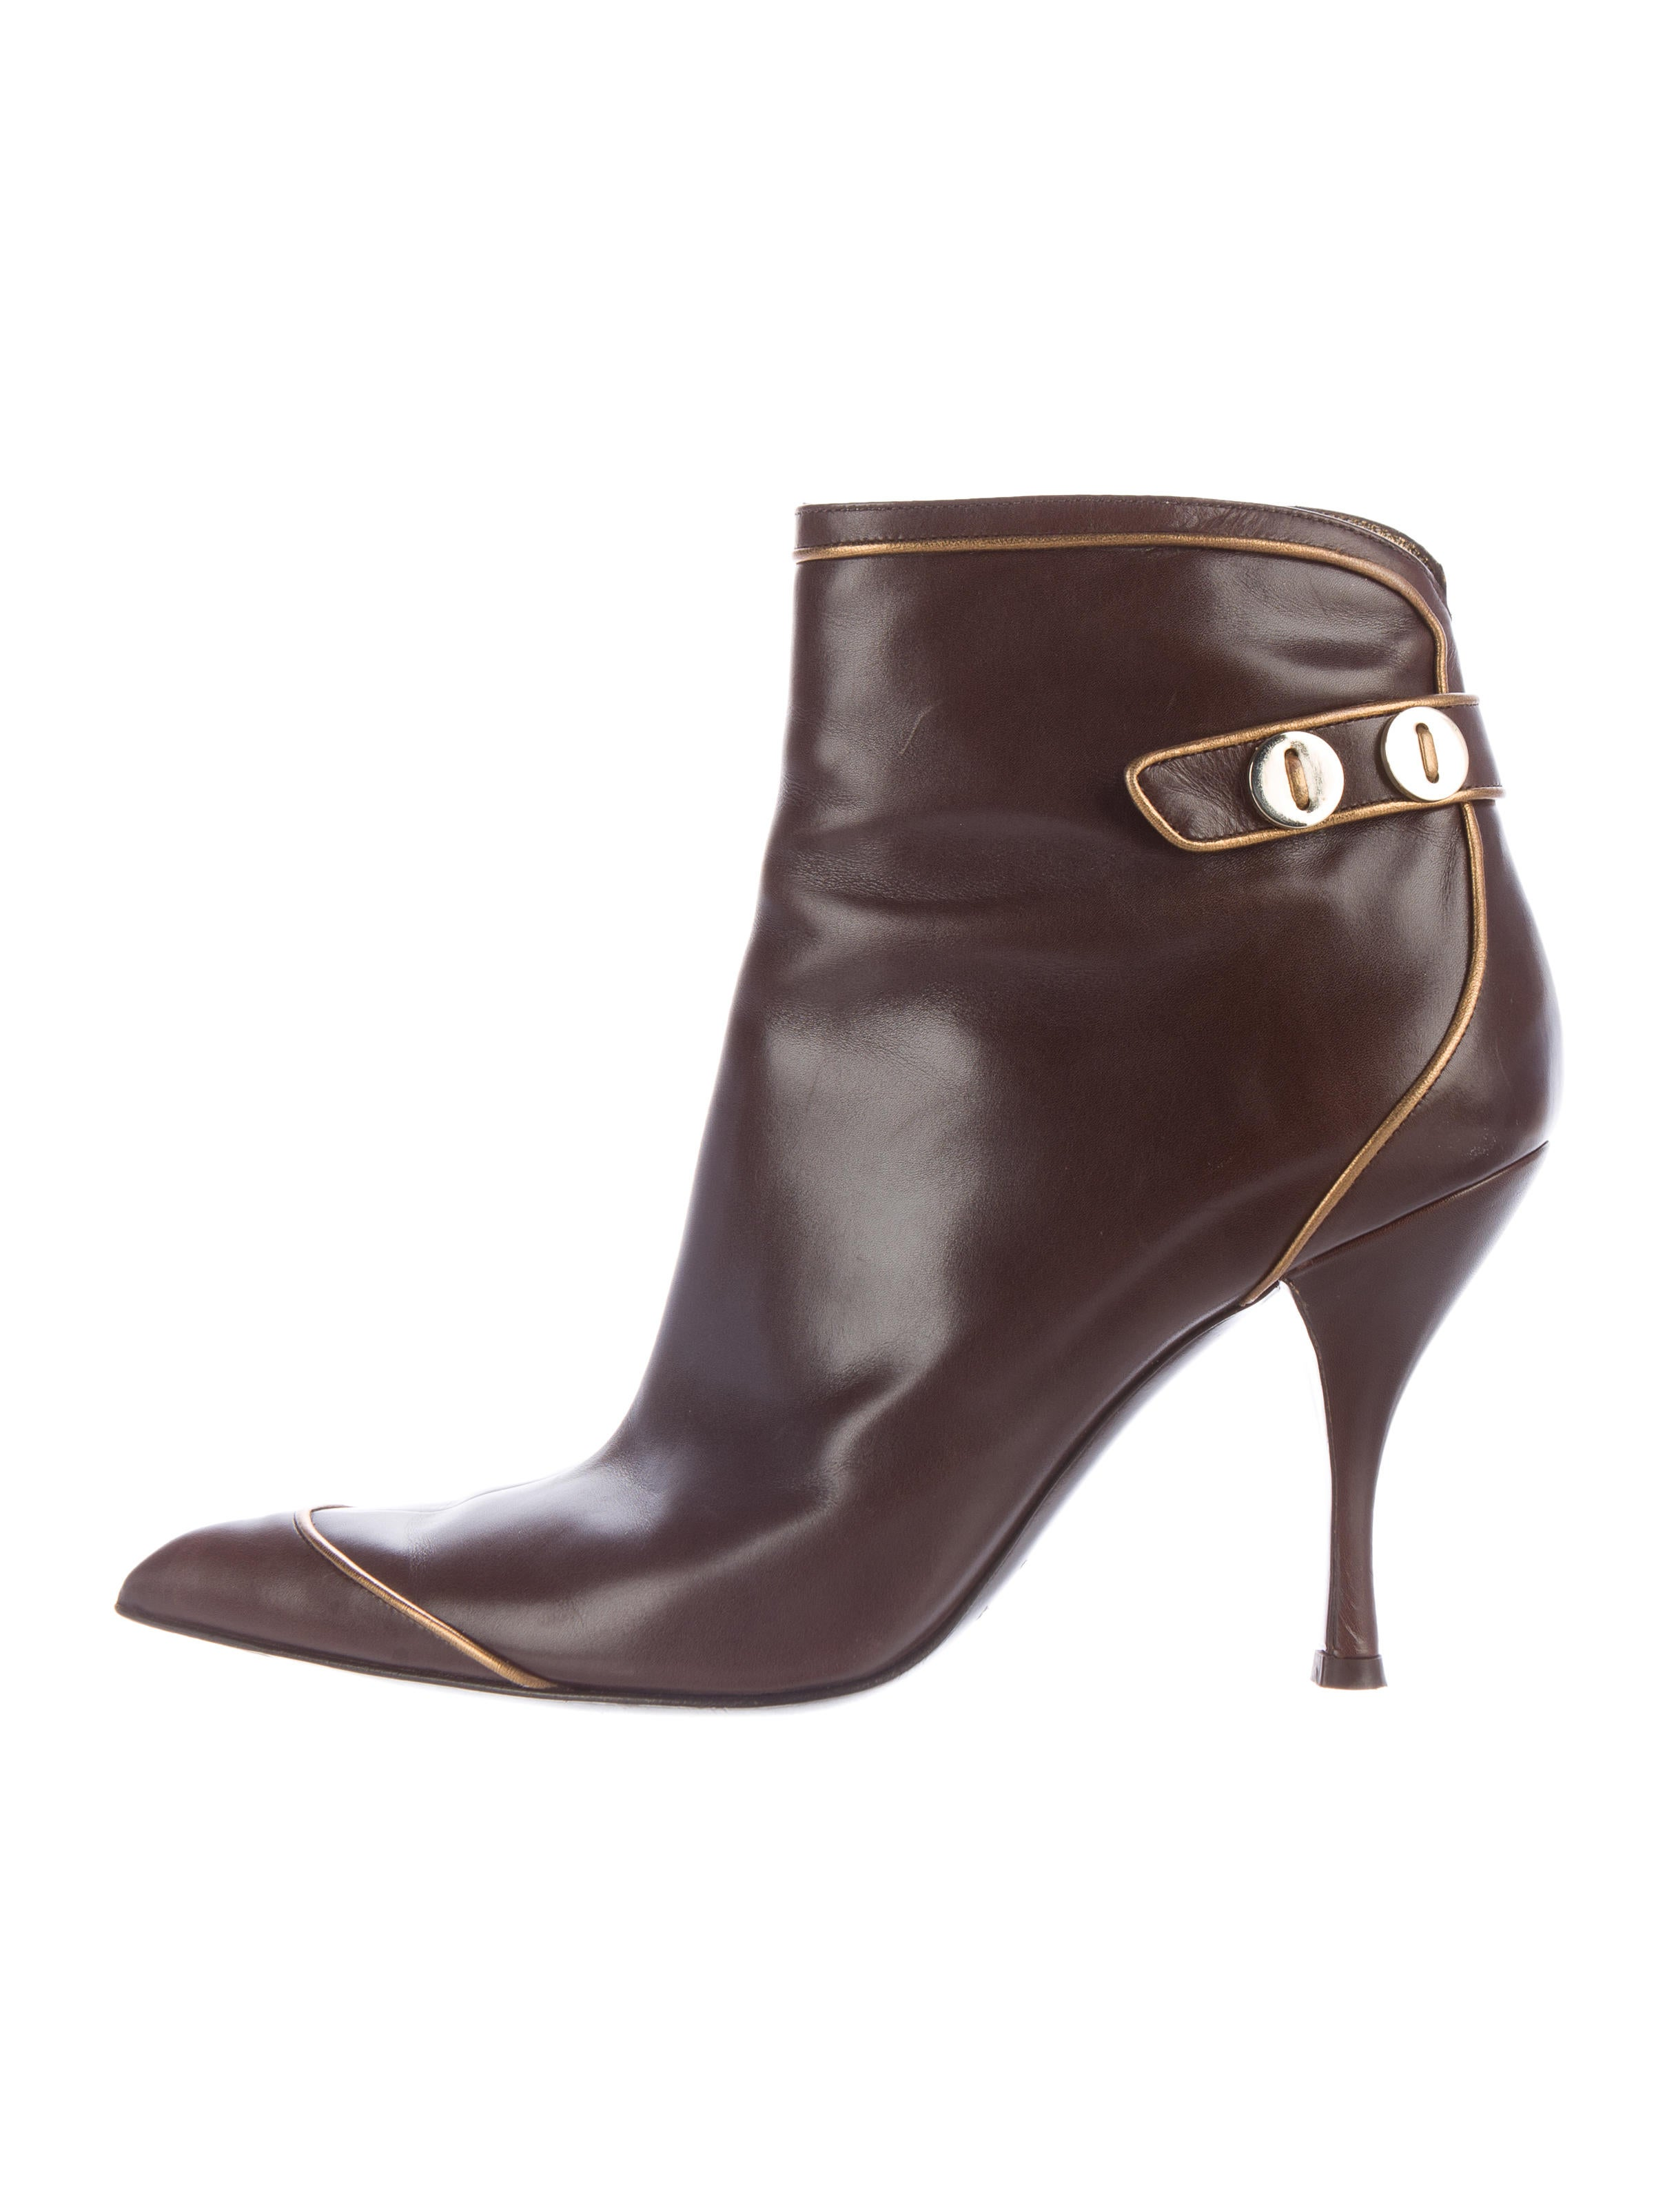 sergio leather pointed toe ankle boots shoes